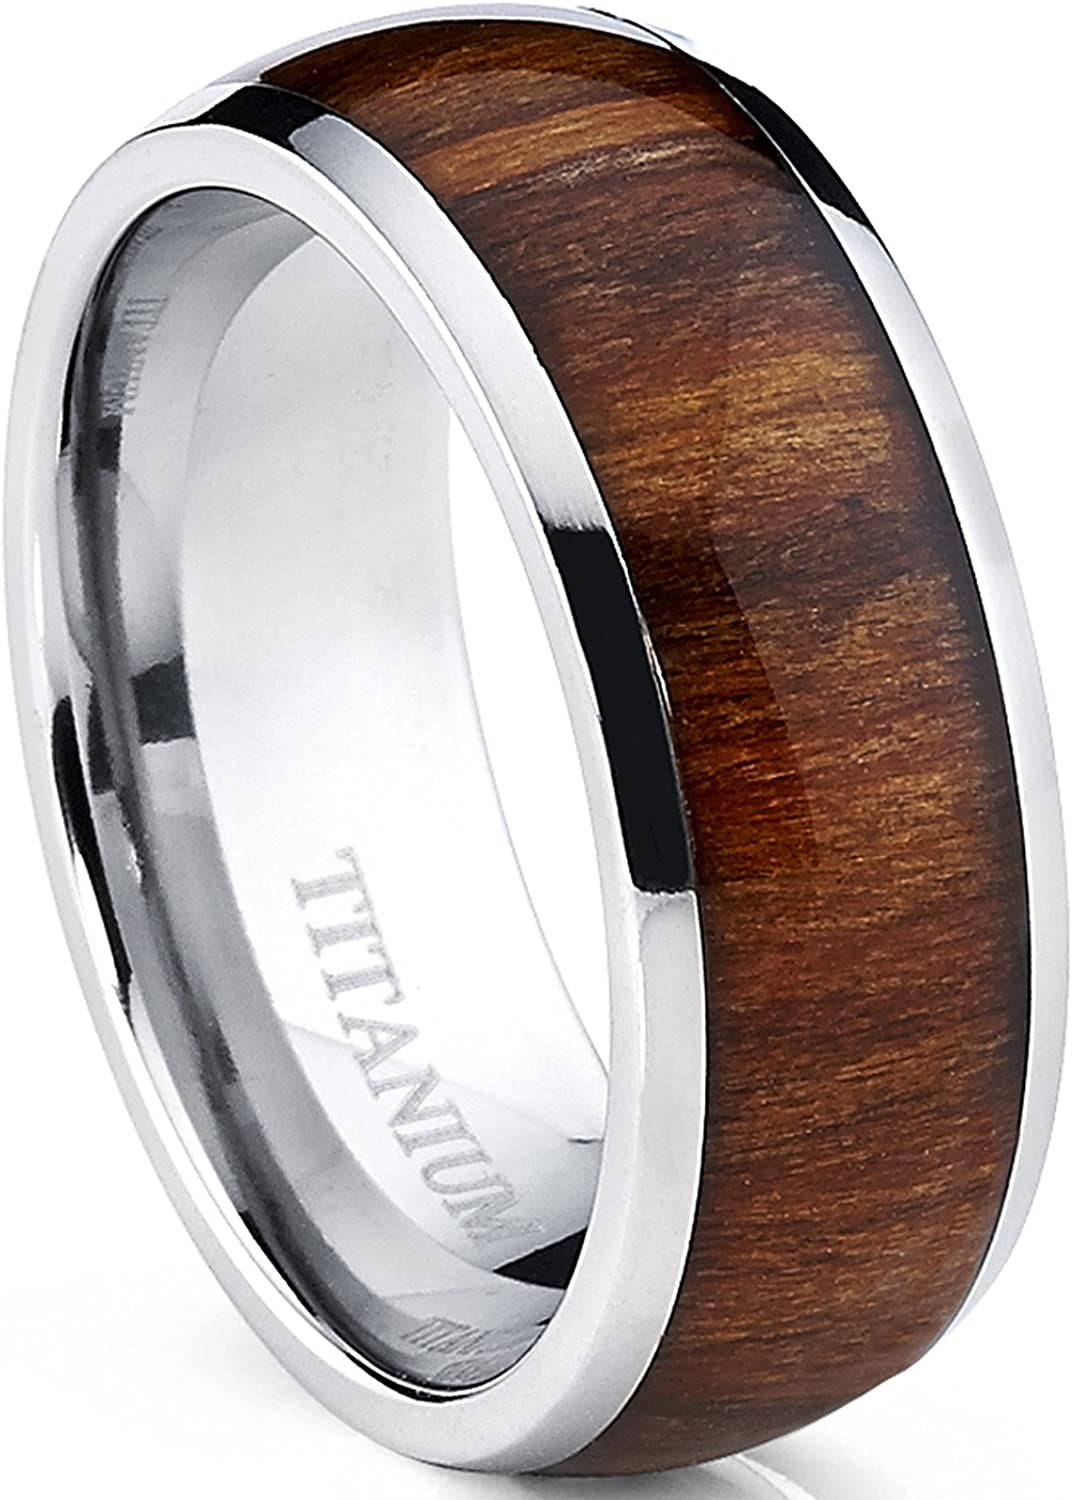 Metal Masters Co. Men's Titanium Ring Wedding Band, Engagement Ring with Real Wood Inlay, 8mm Comfort Fit Sizes 6 to 13